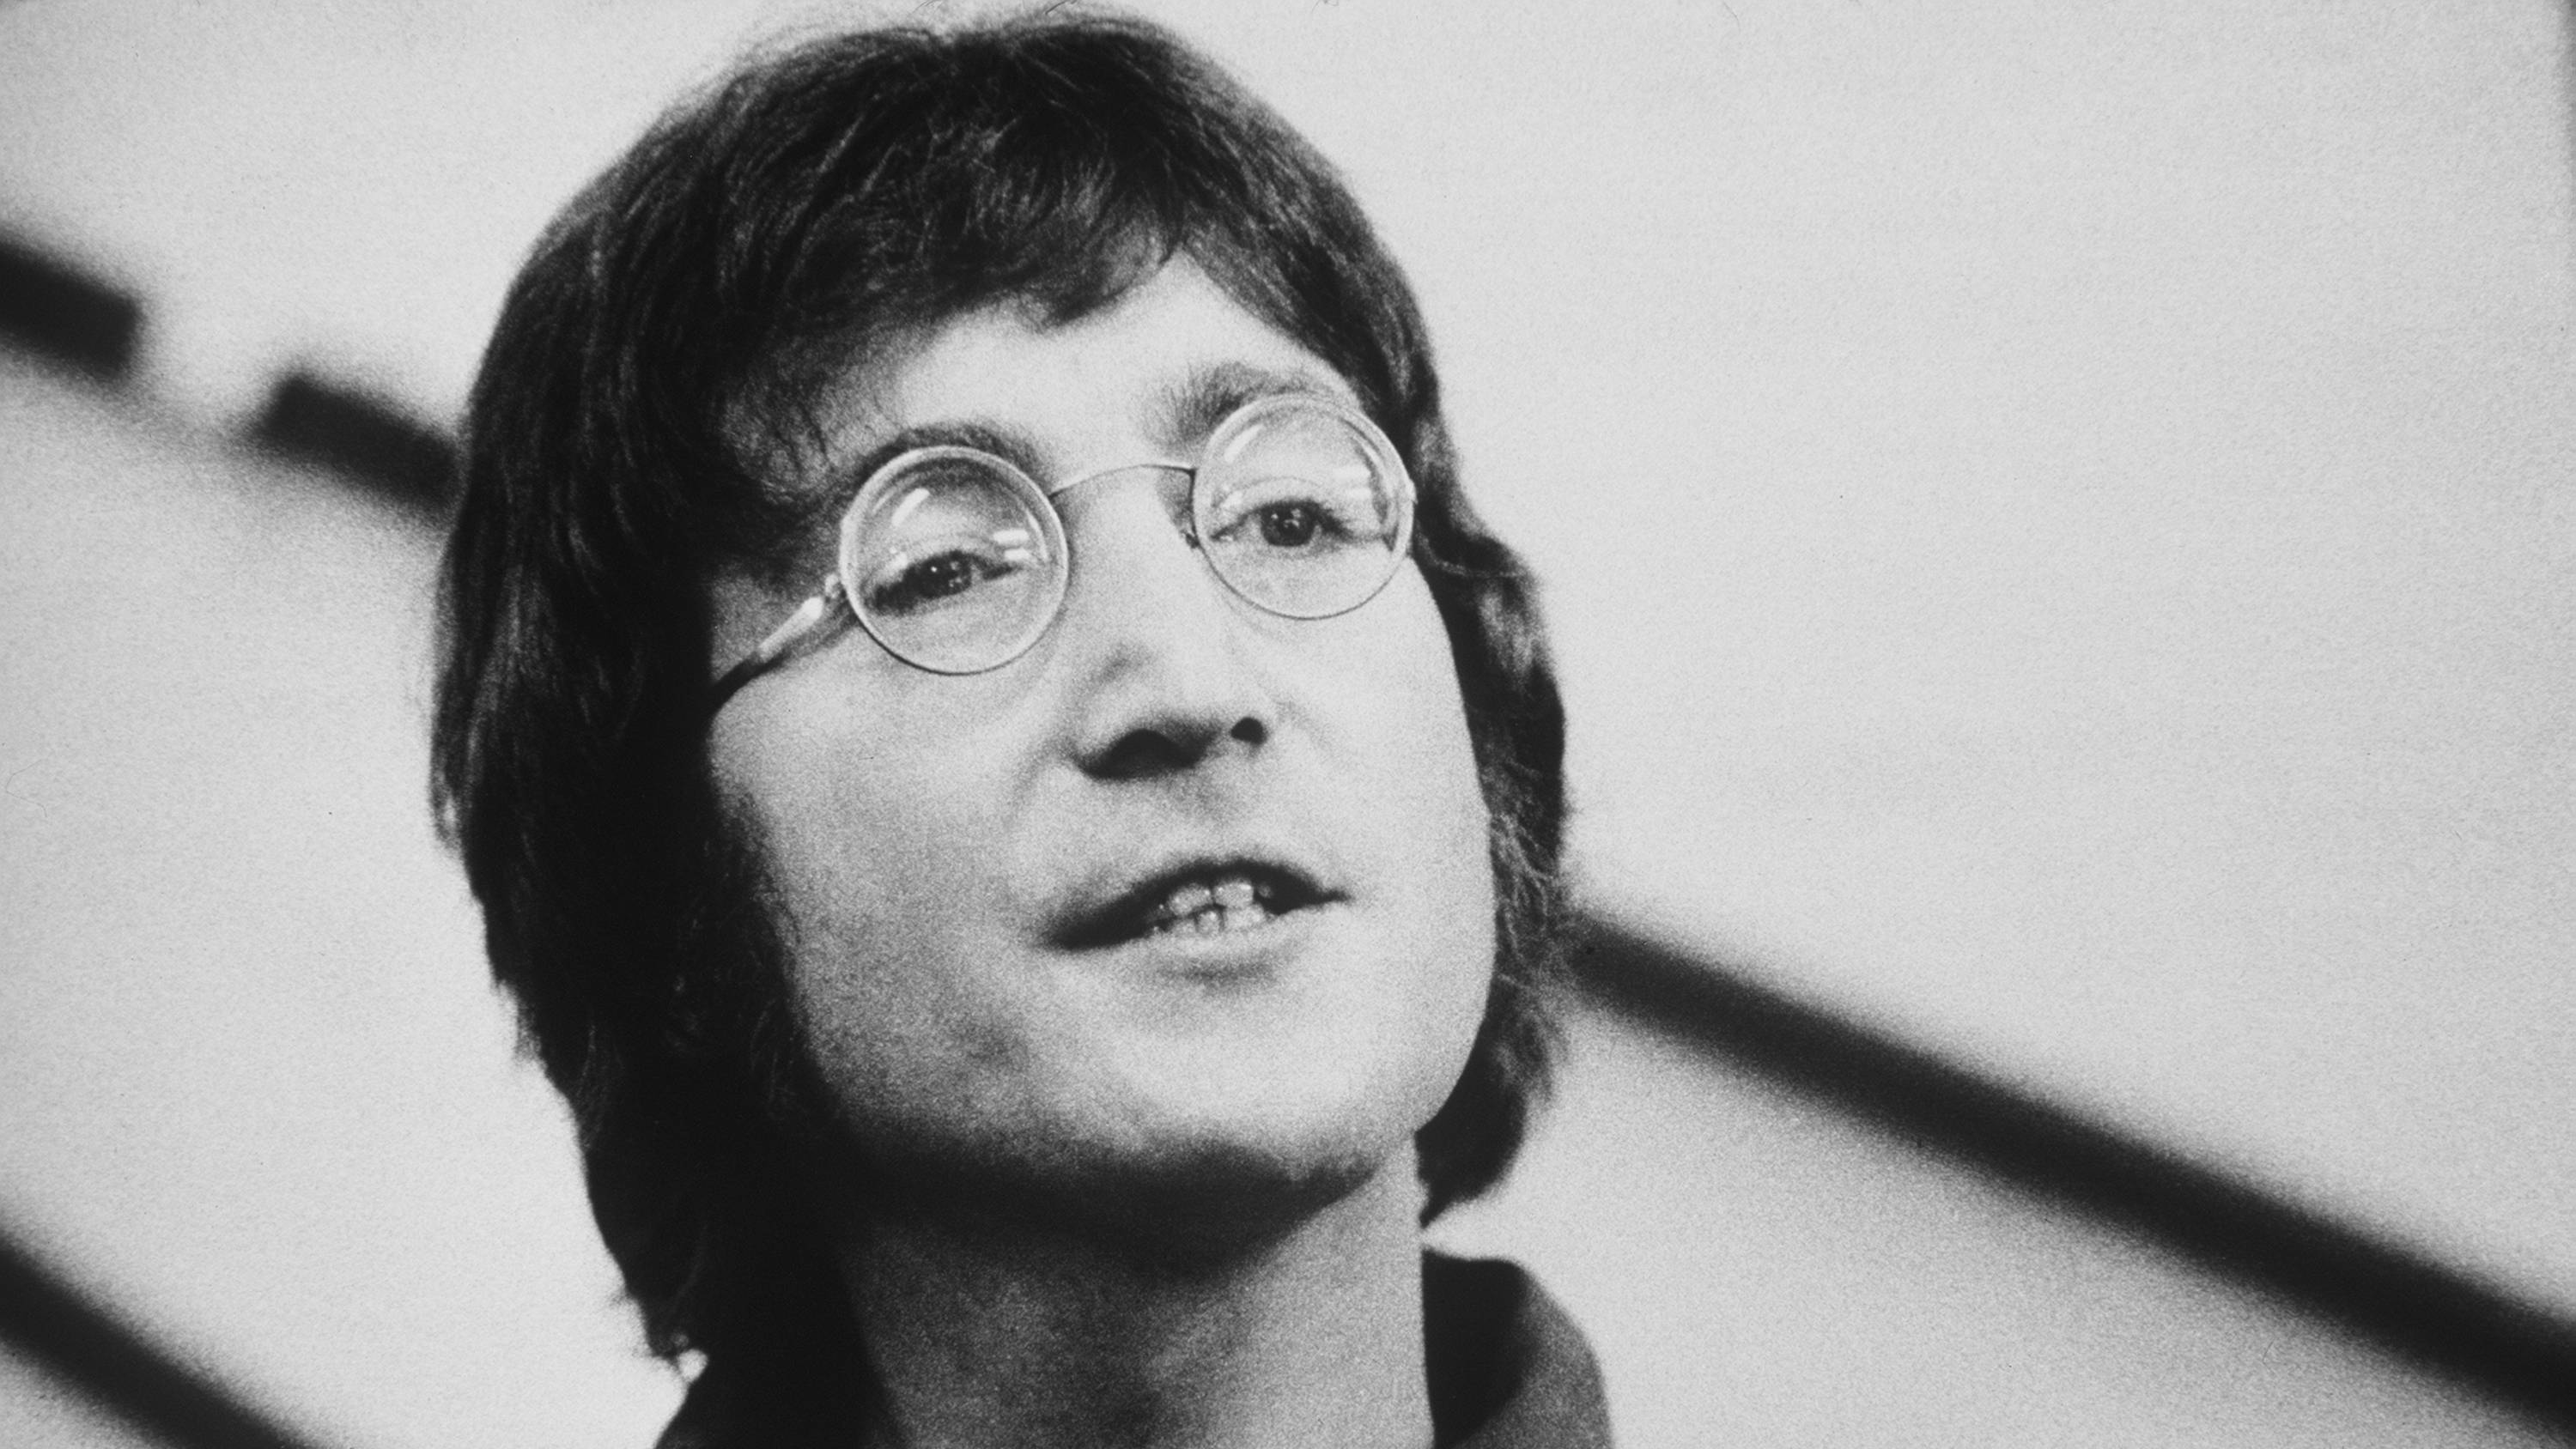 John Lennon Songs His 10 Best Ever Ranked Smooth